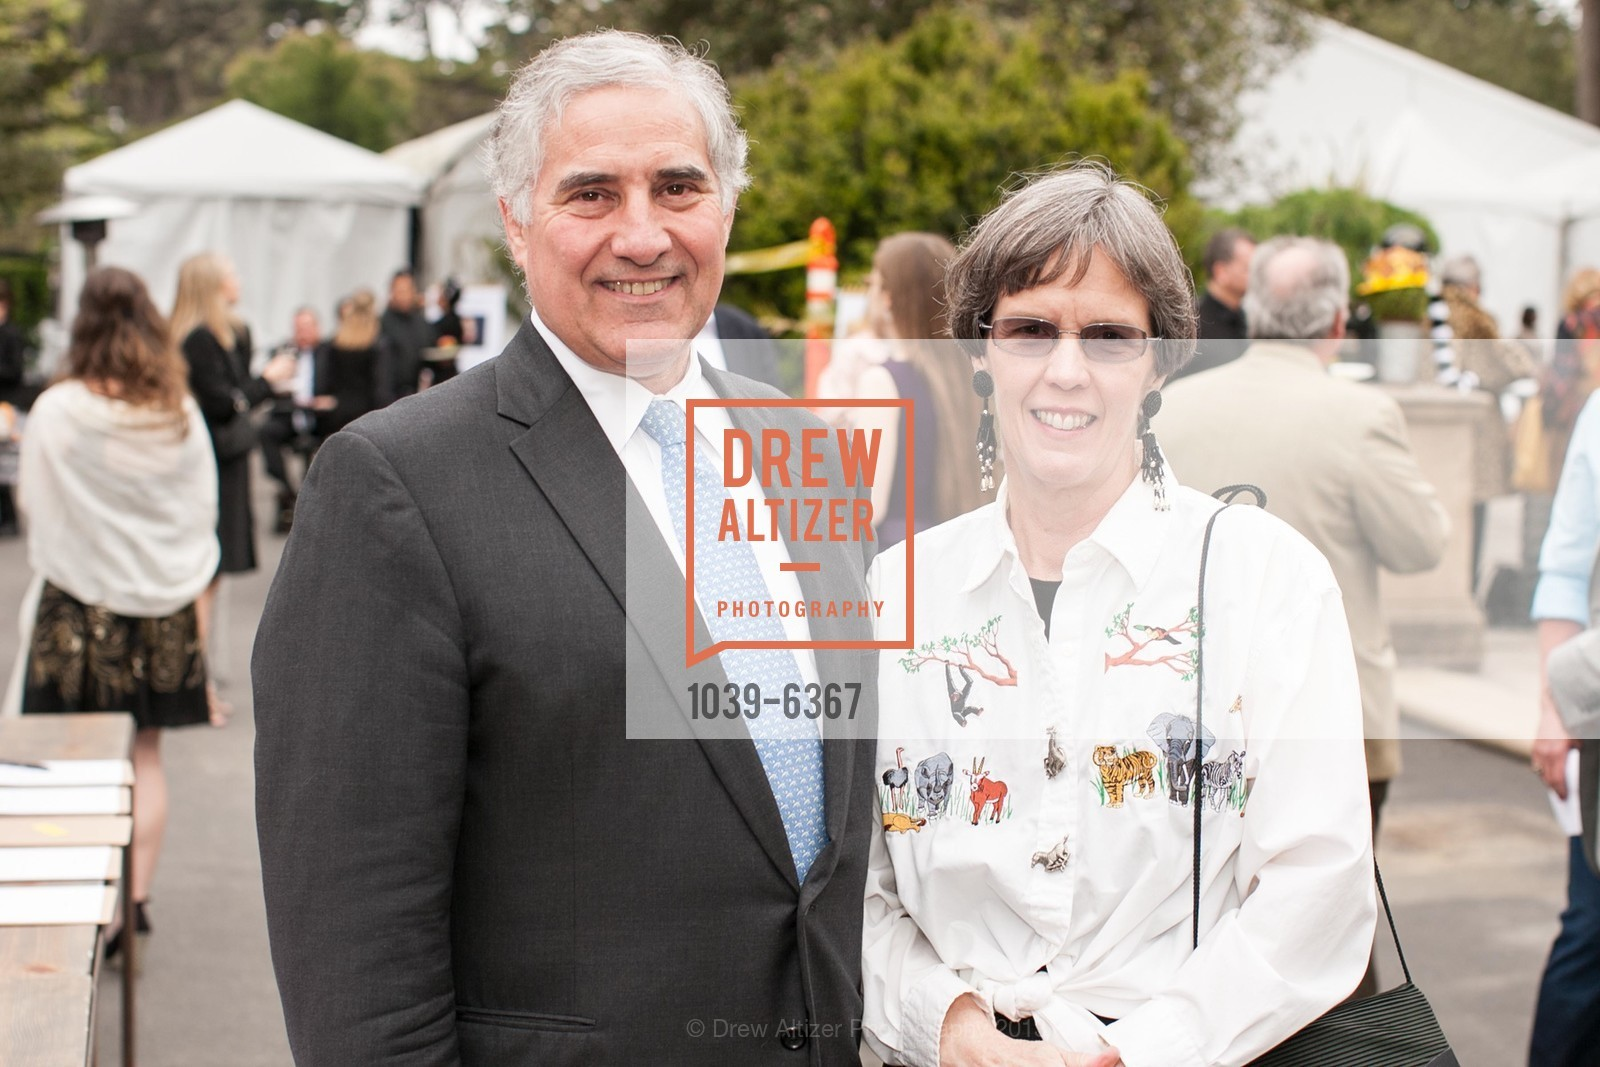 Emmett Stanton, Marion Stanton, ZooFest 2013 Hard Hat & Tails, US, May 11th, 2013,Drew Altizer, Drew Altizer Photography, full-service agency, private events, San Francisco photographer, photographer california